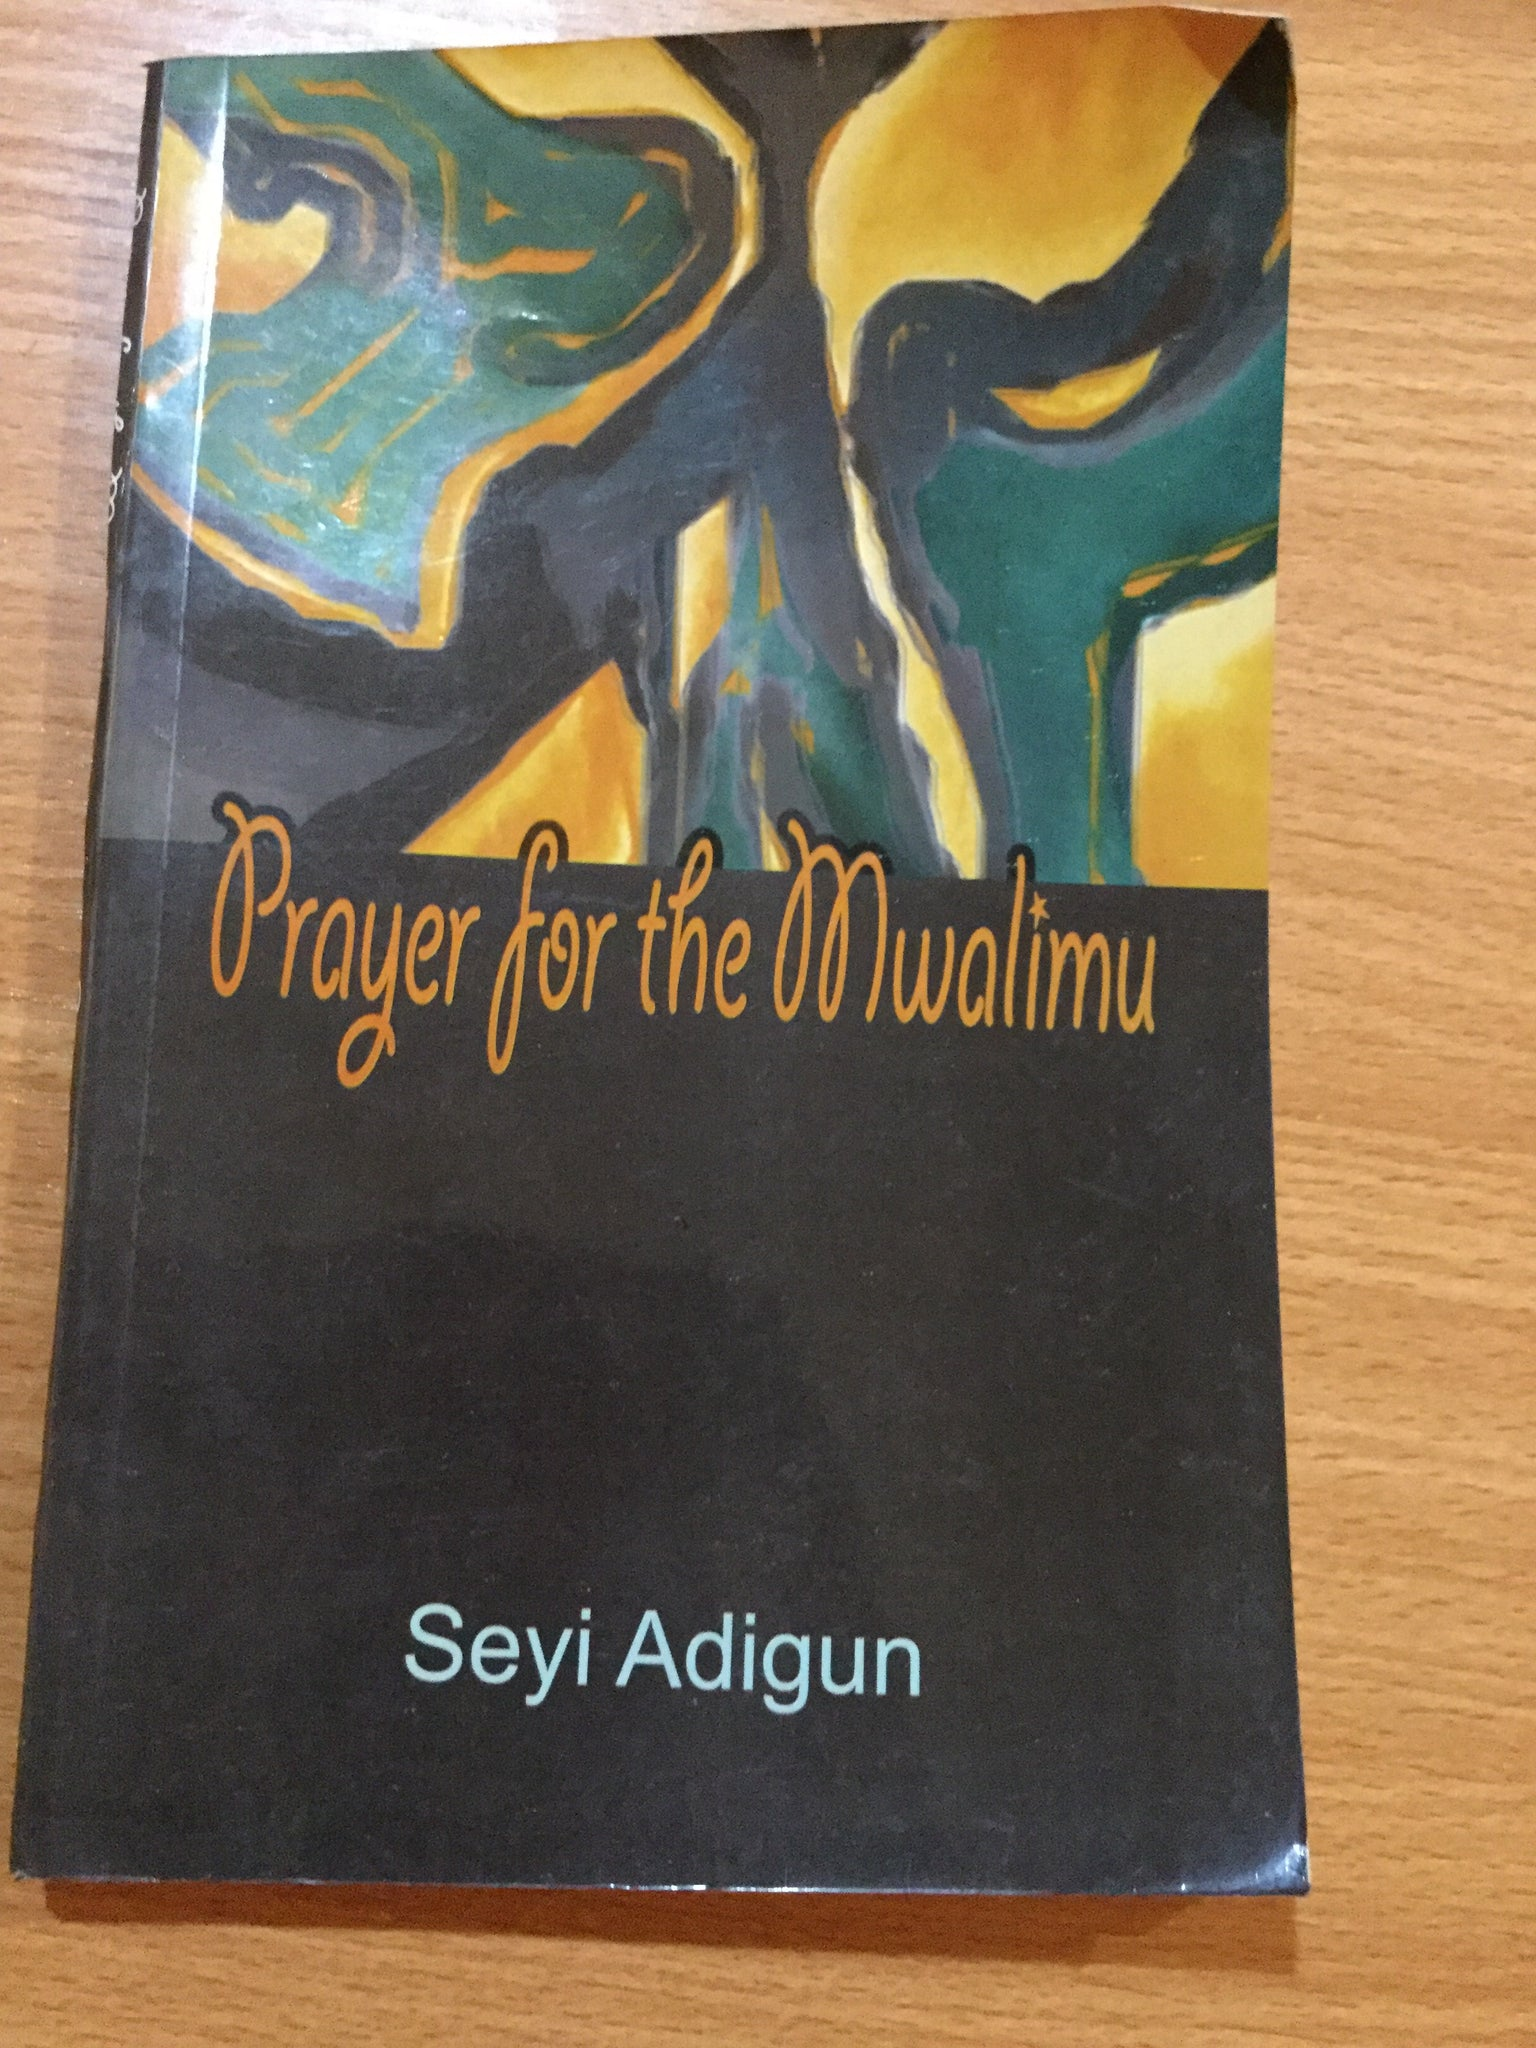 Prayer for the Mwalimu